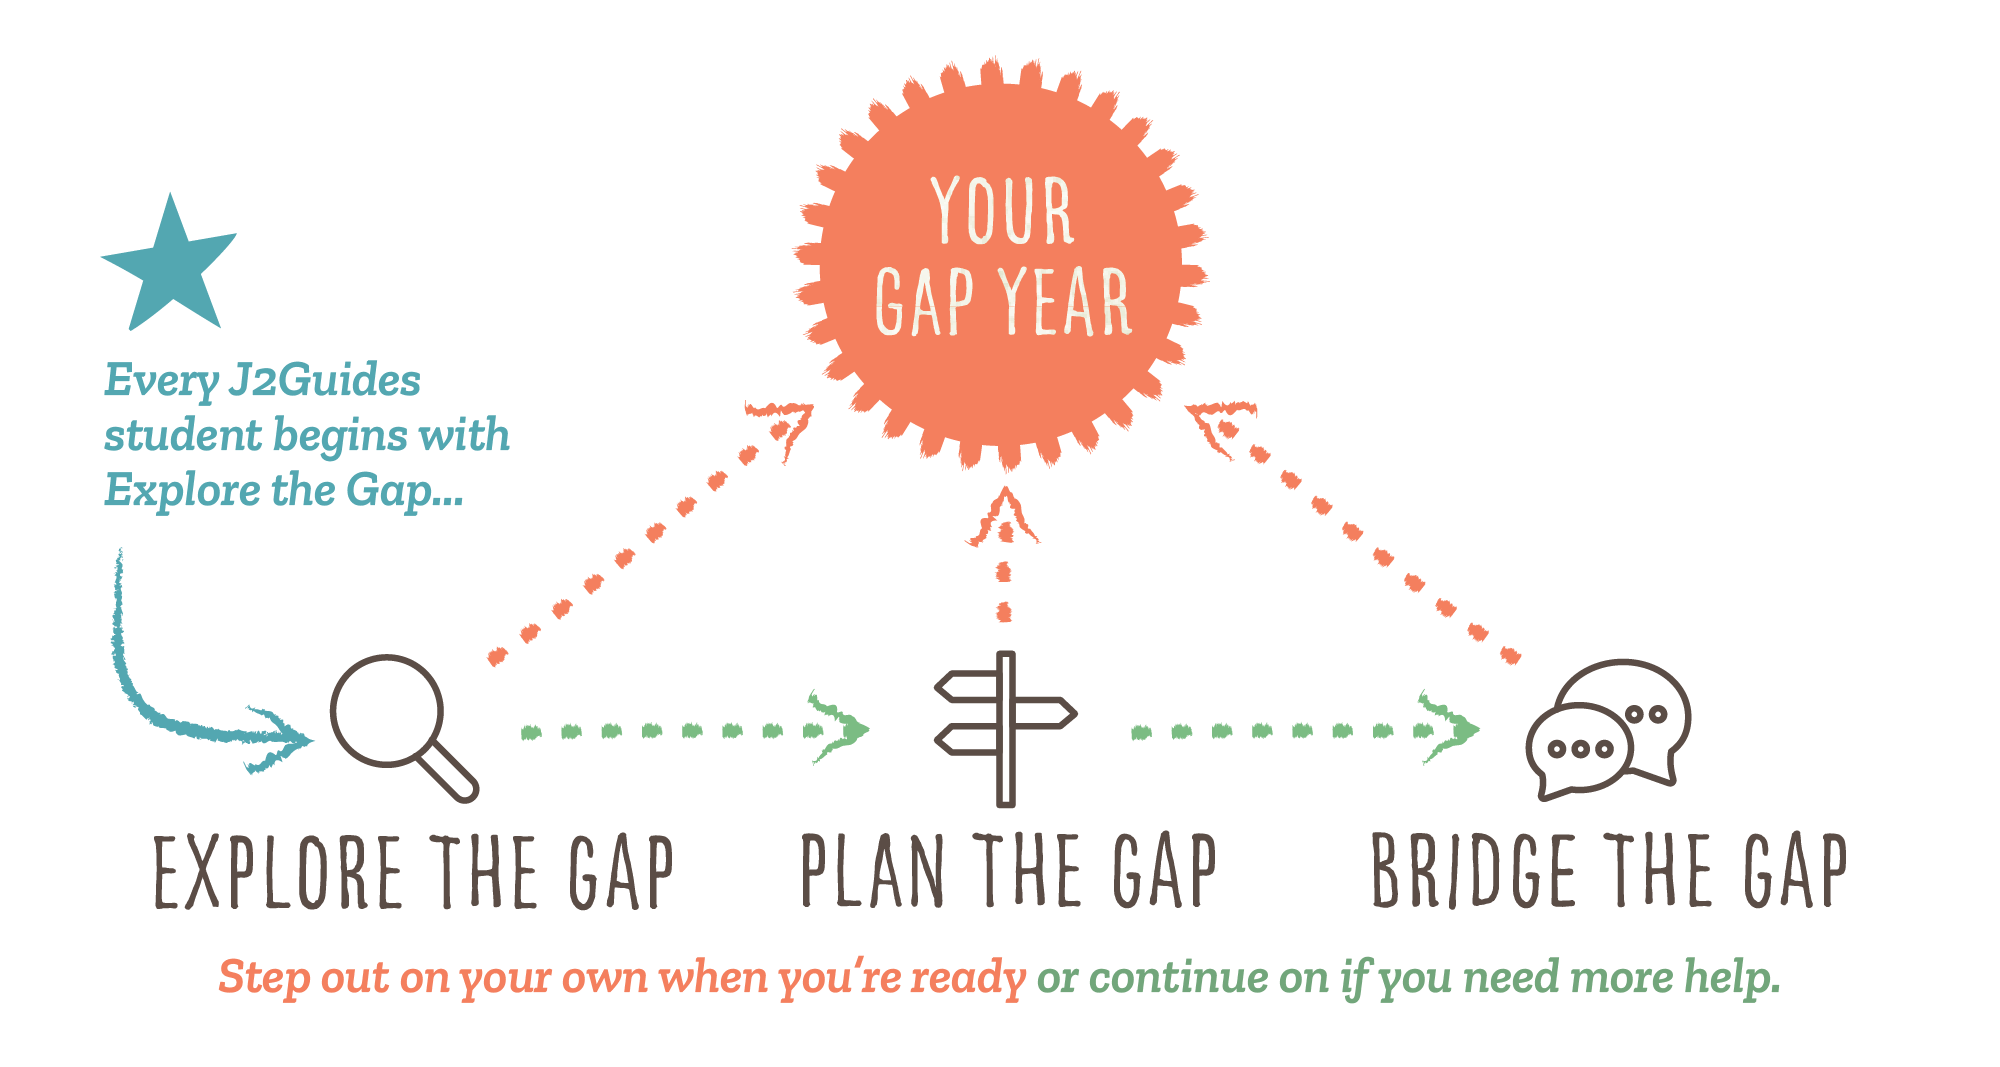 Diagram showing how students all begin with Explore the Gap and then proceed with additional services as needed towards their Gap Year planning